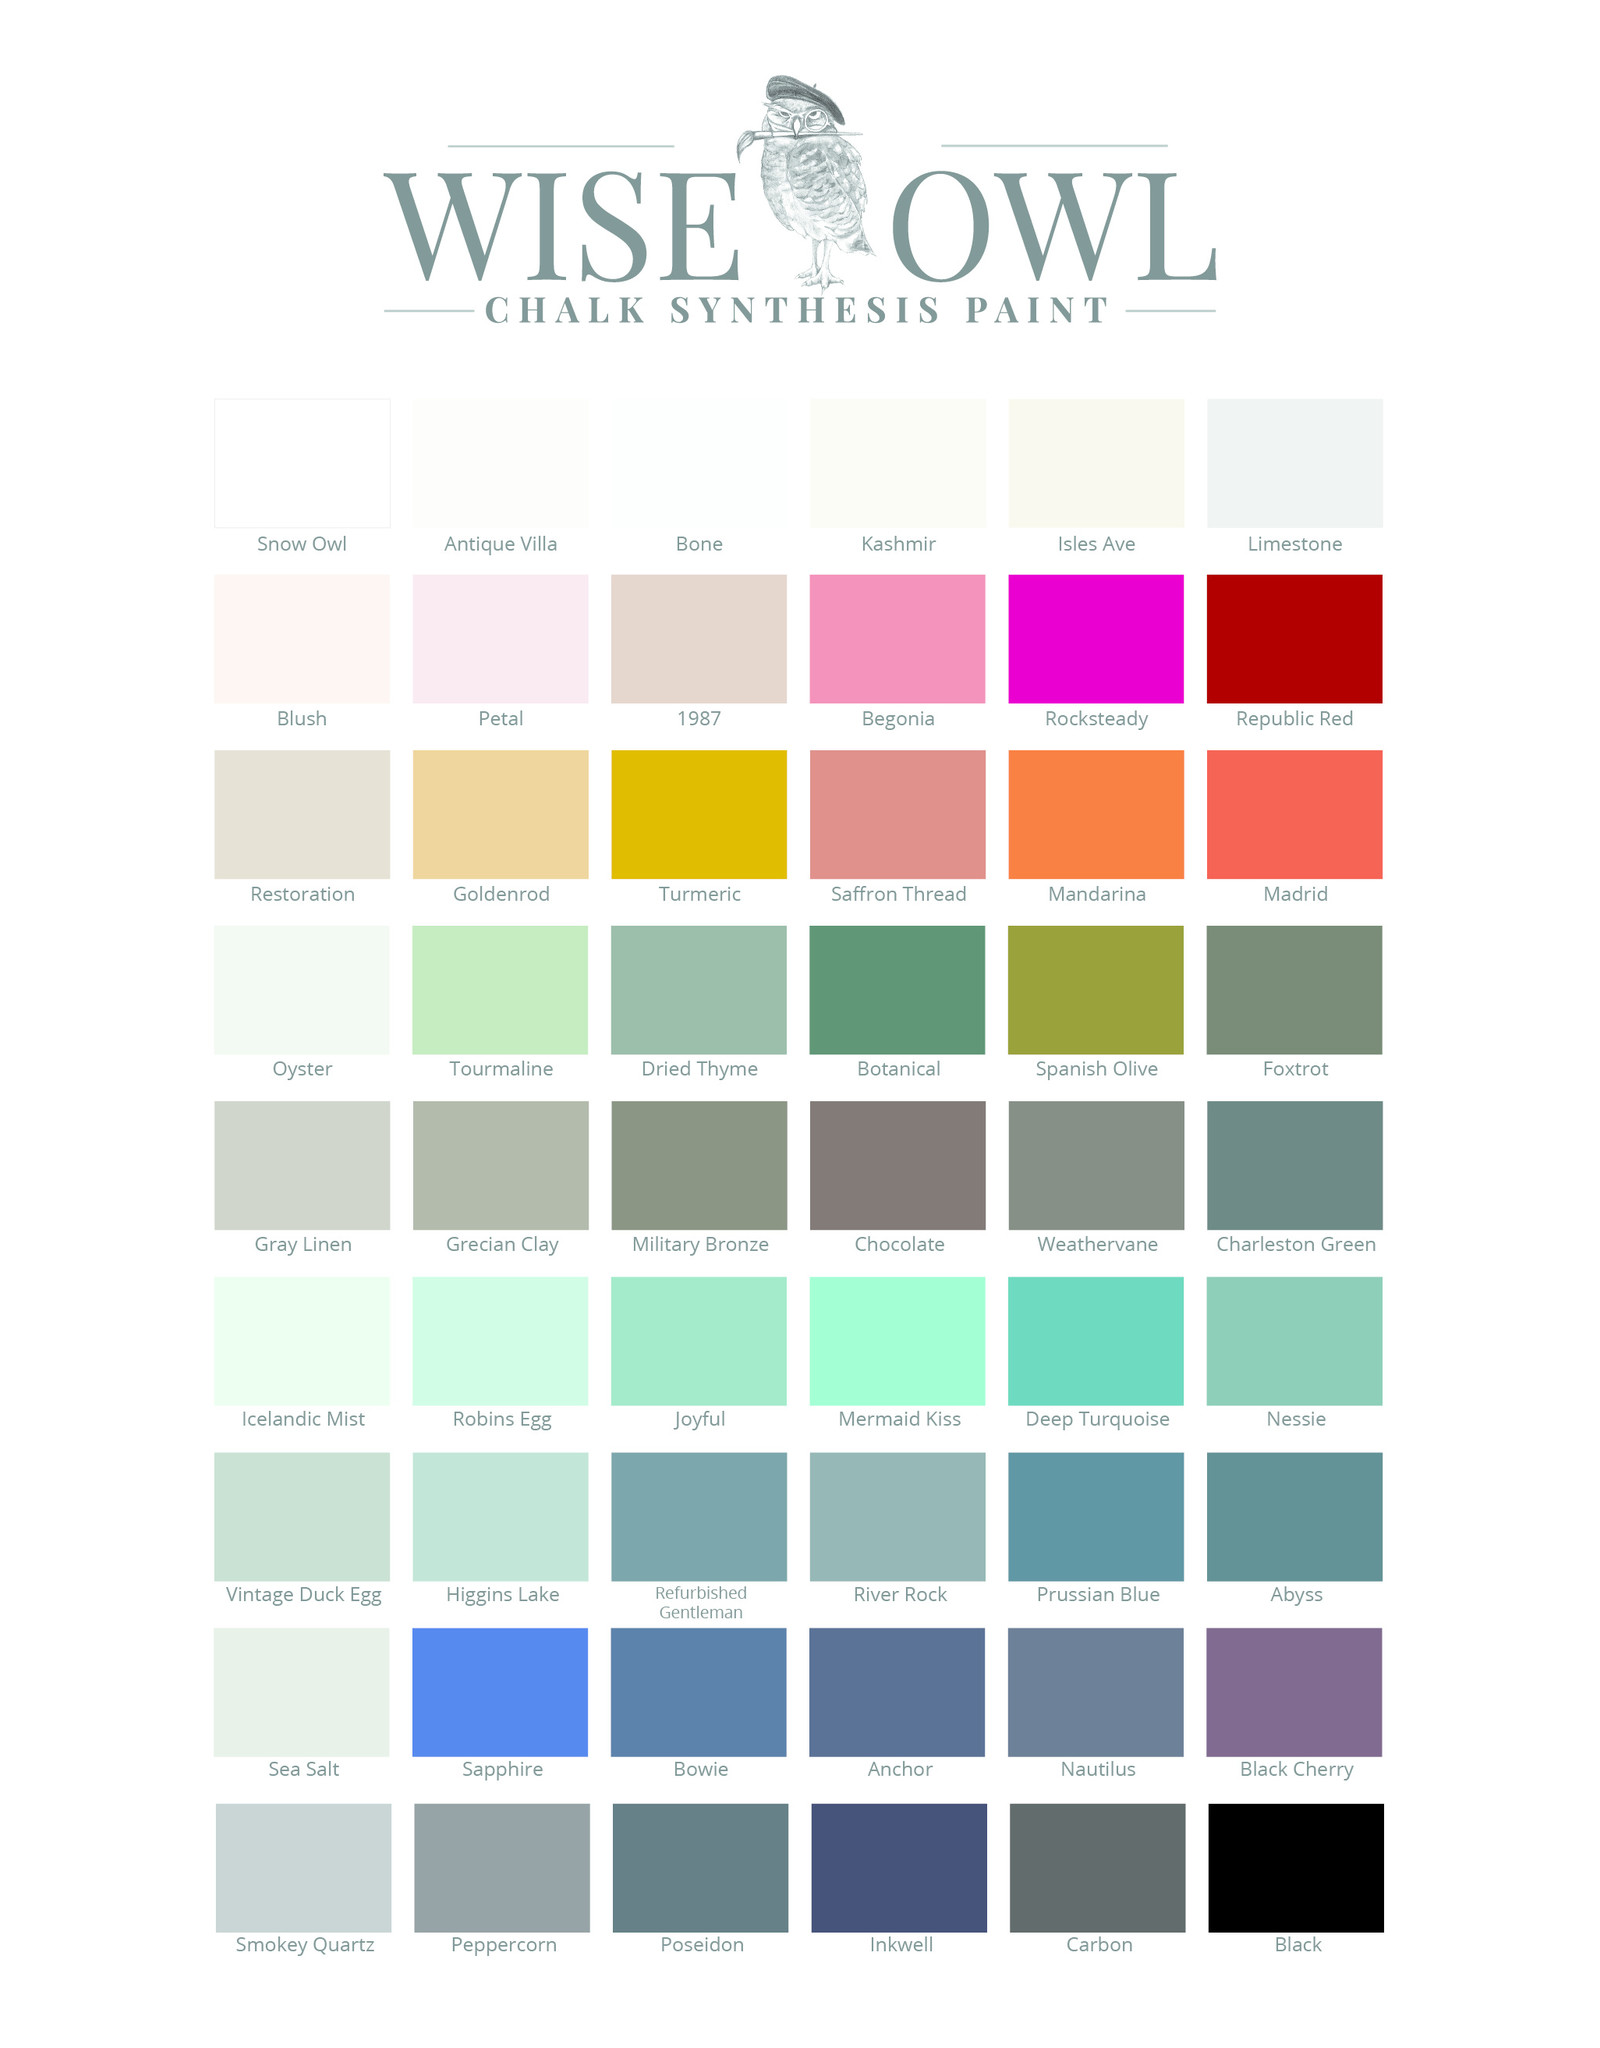 Wise Owl Paint Chalk Synthesis Paint Inkwell-Pint